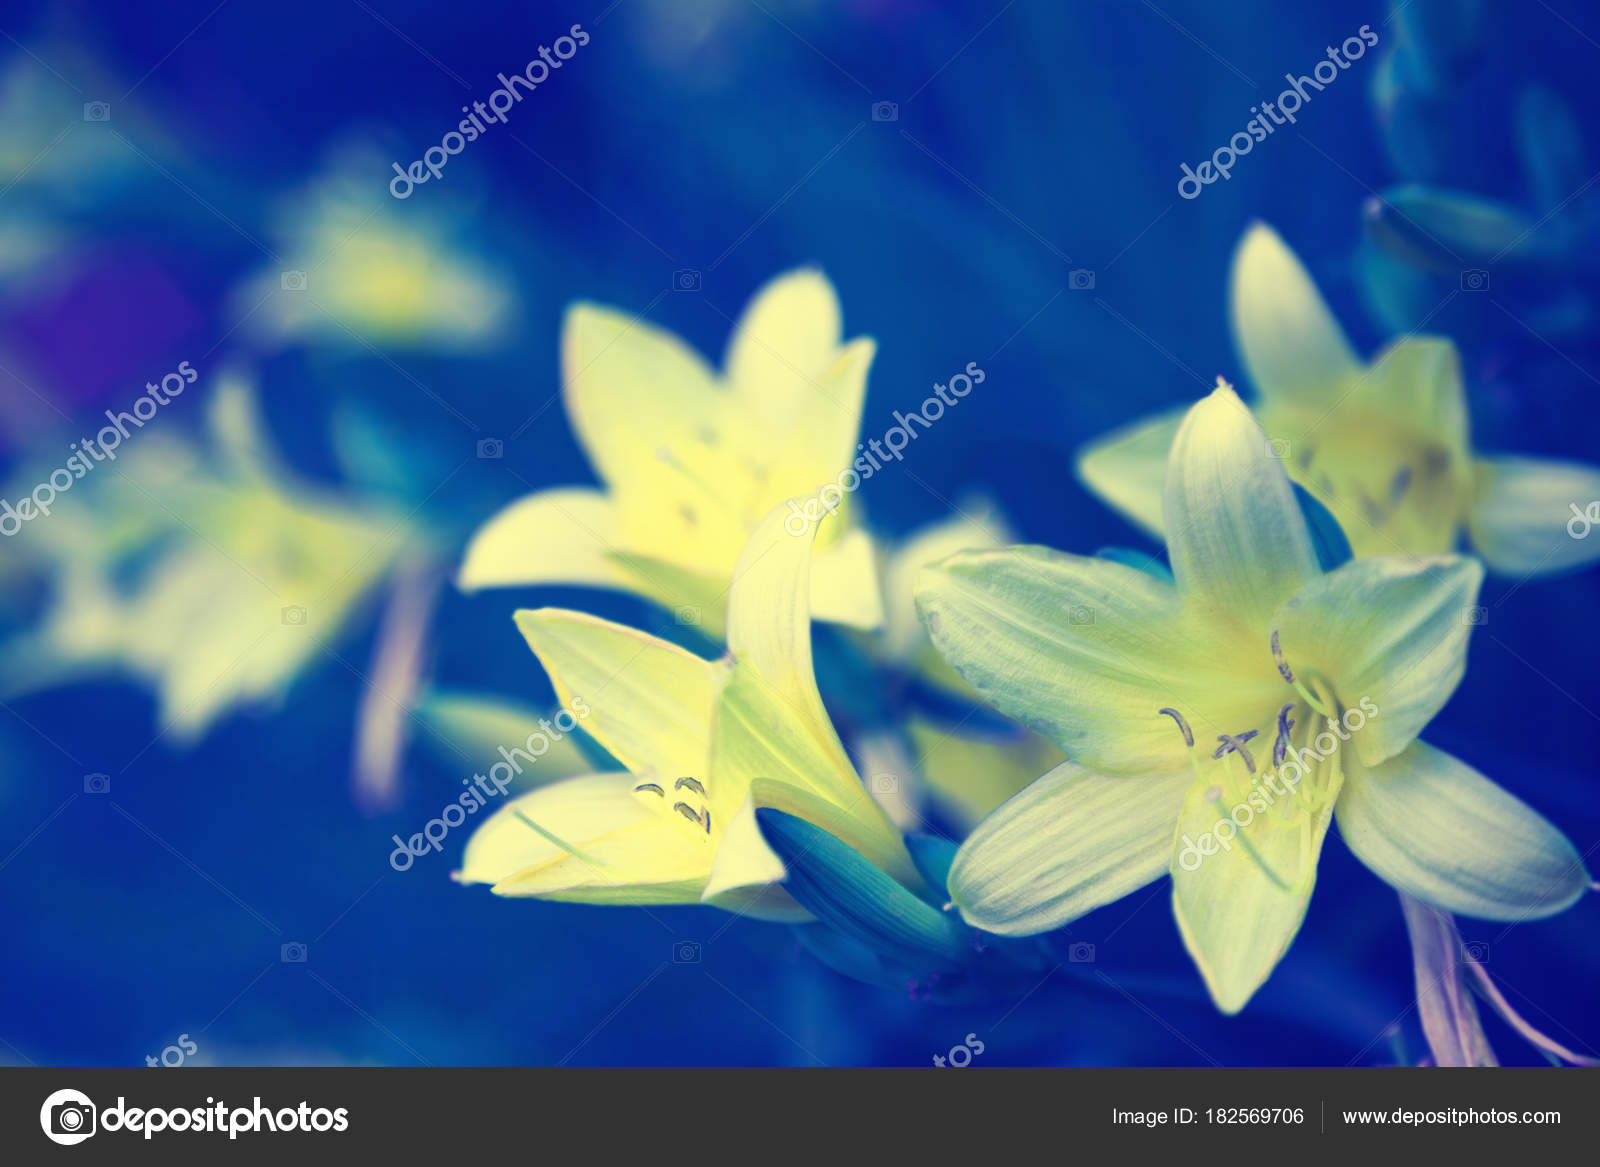 Vintage wild lily flowers natural background stock photo vvvita vintage wild lily flowers natural background stock photo izmirmasajfo Gallery